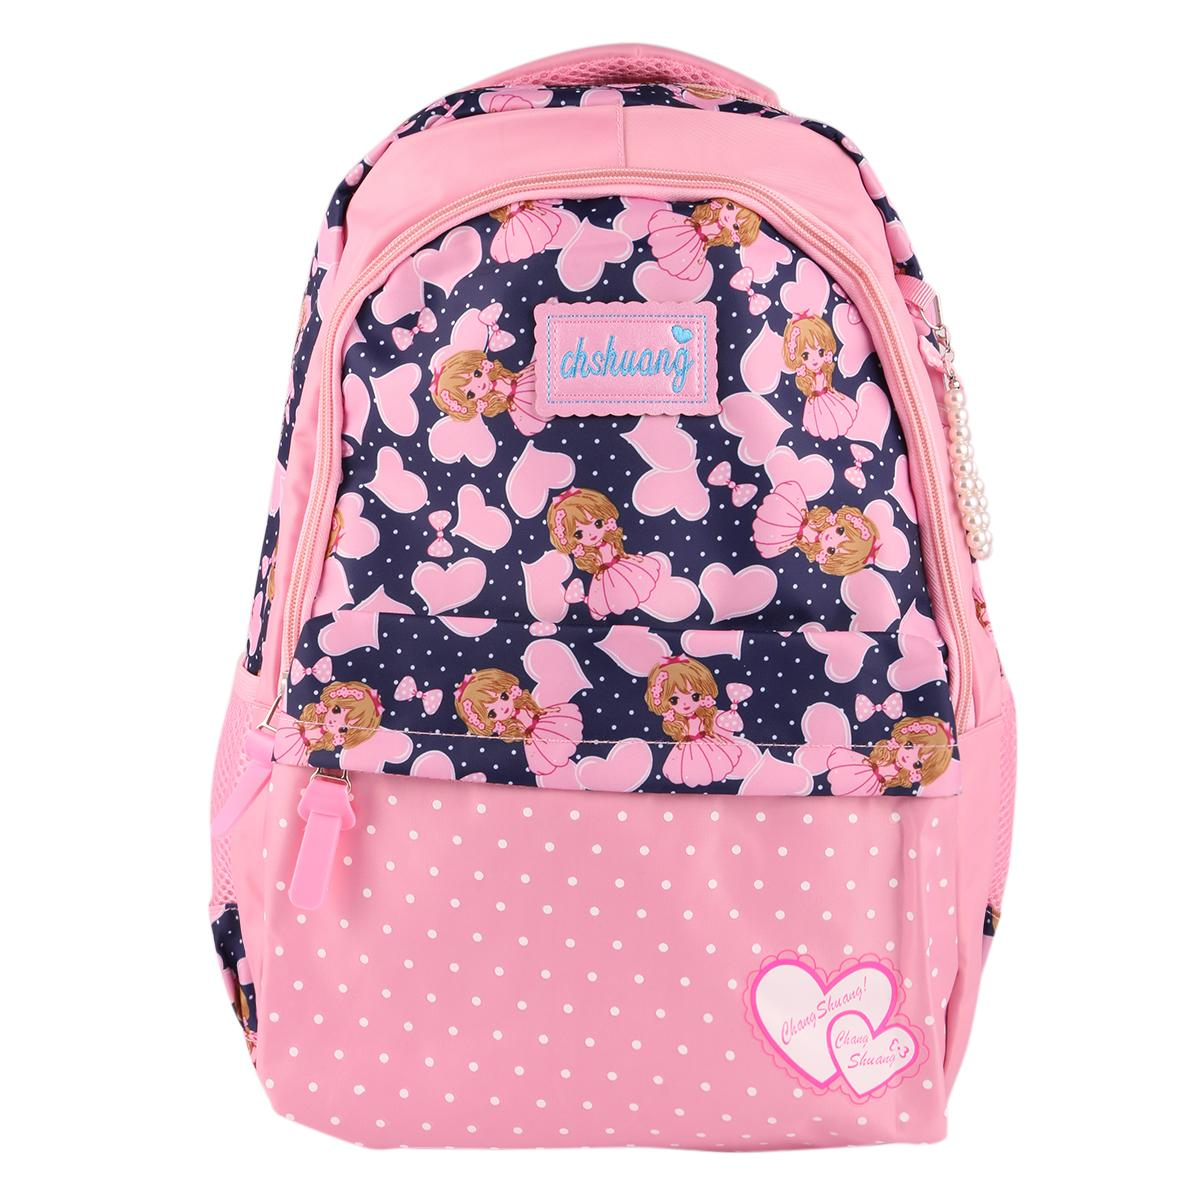 Buy Chip nouko Kids Bags 2 at Best Prices Online in Bangladesh ... 26e76a177a16c